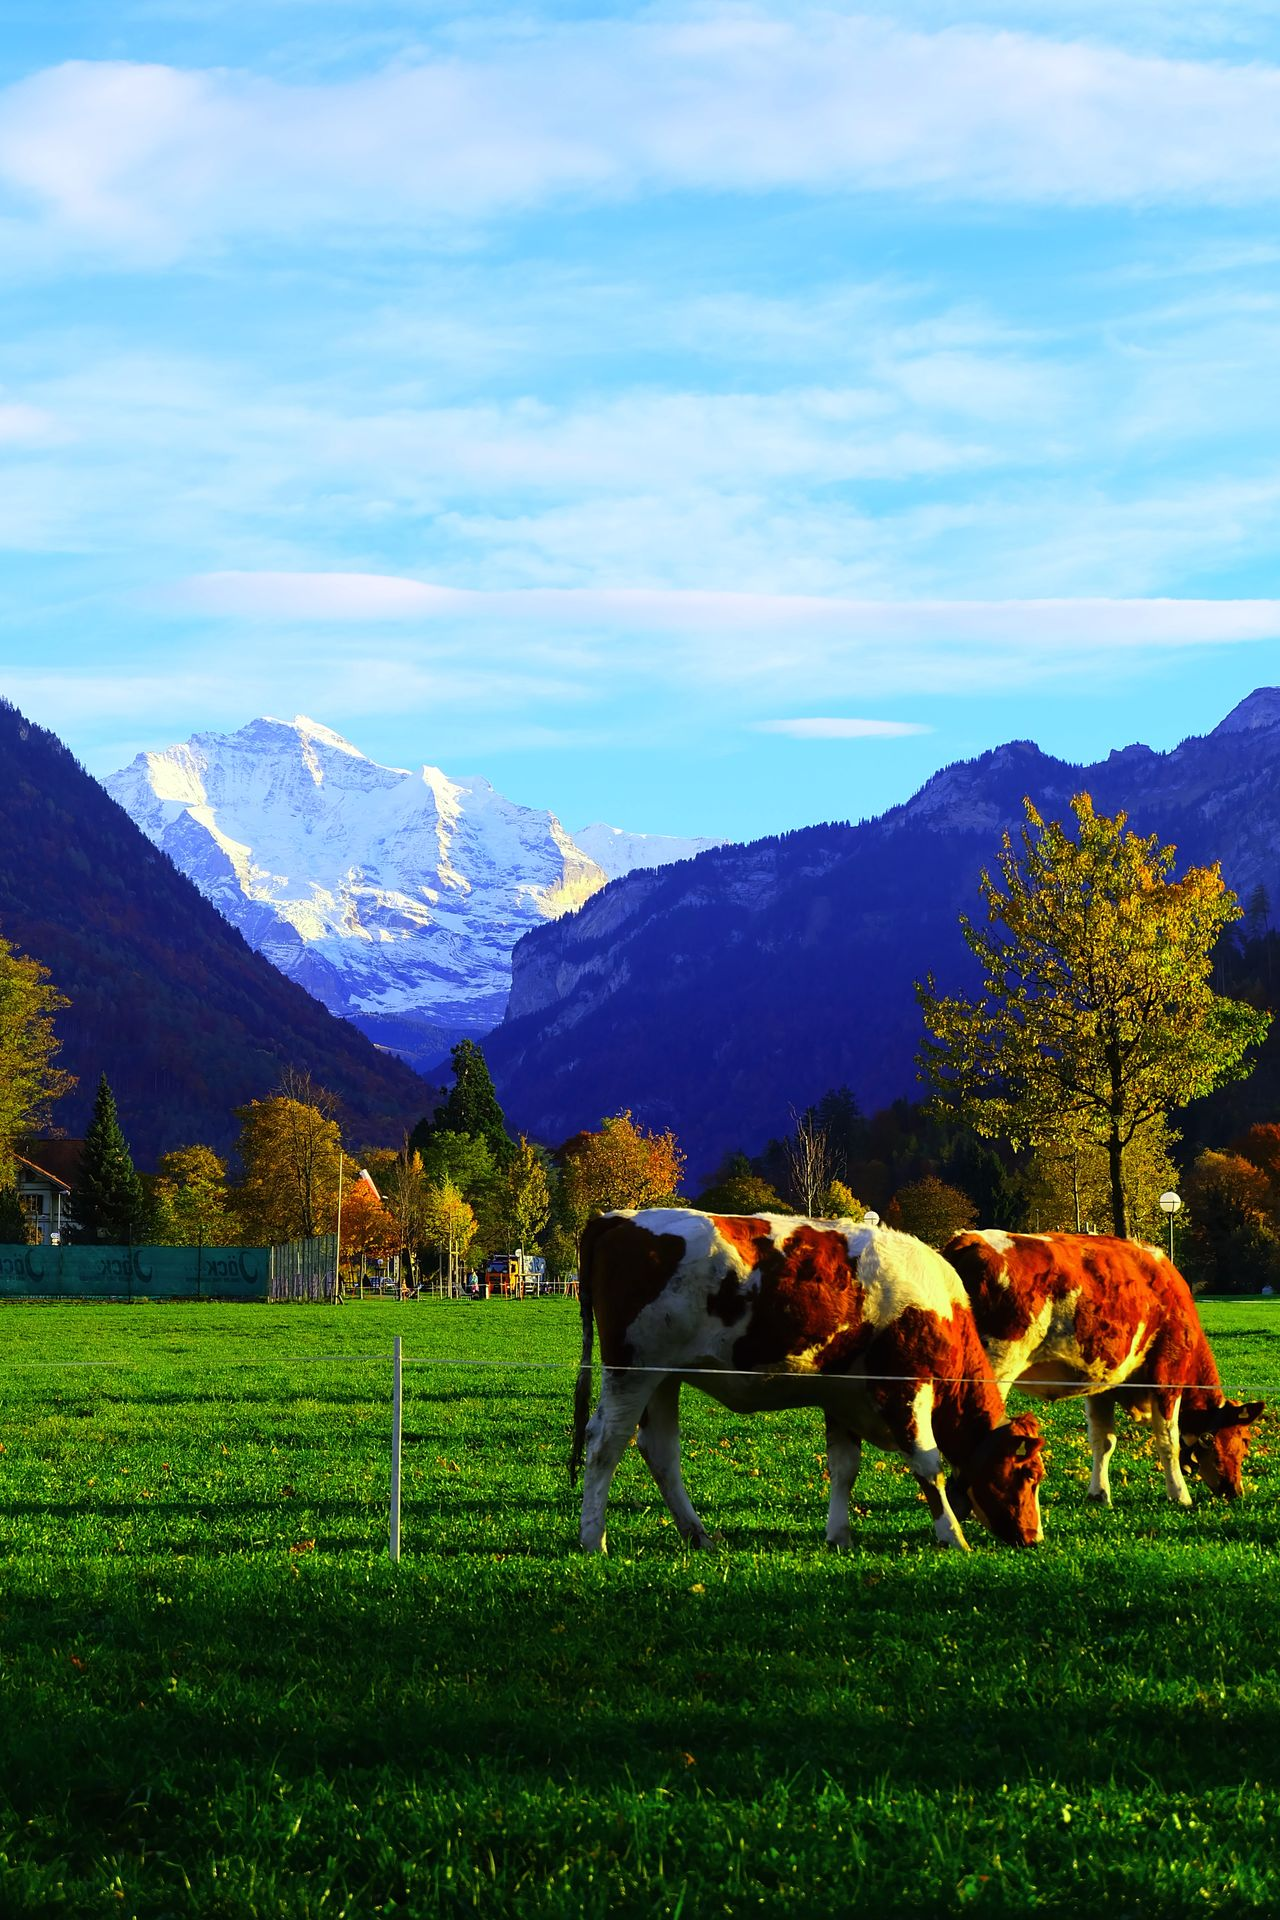 Beauty In Nature Cow Cows Interlaken Jungfrau Mammal Mountain Mountain Range Nature Switzerland